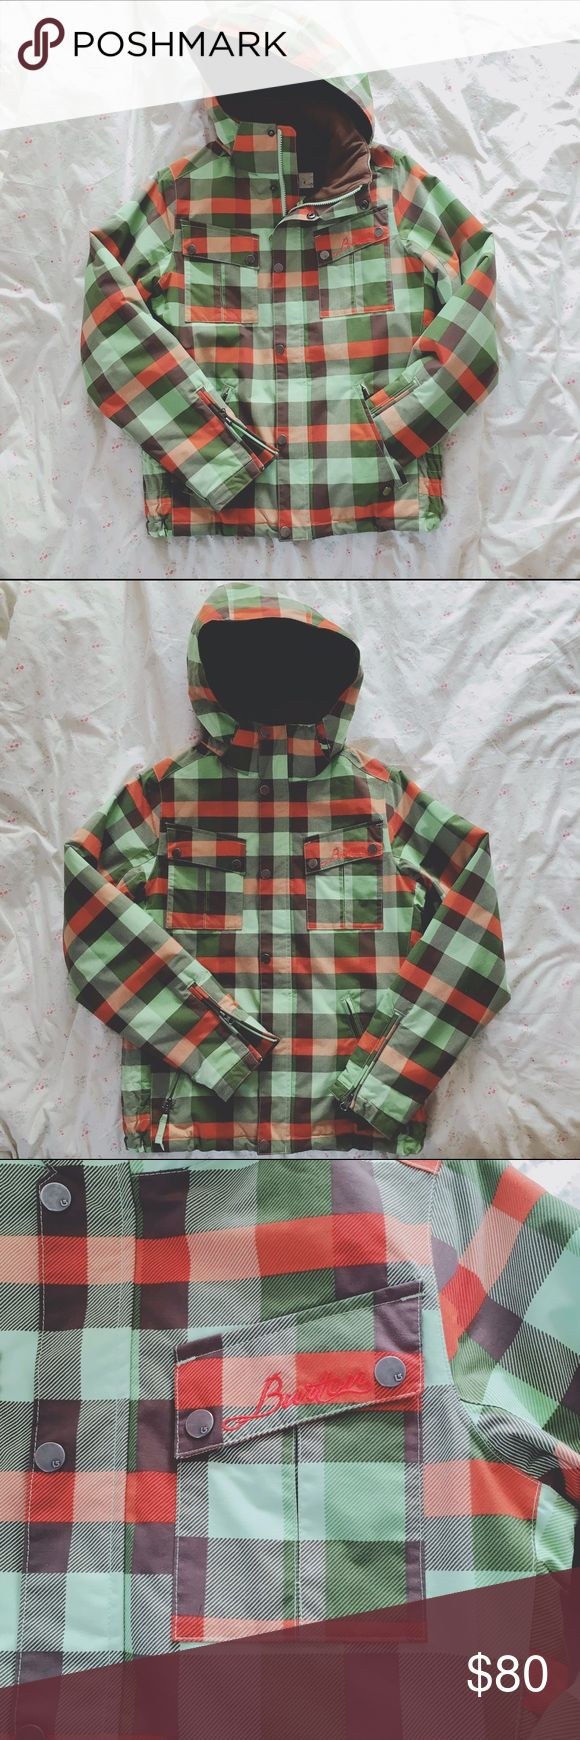 BURTON 🌻 Plaid Snowboard Jacket Super cute, super warm women's snowboard jacket from Burton. I love this coat but I live I. Thailand and won't be needing it there. 😎 Only wore this a few times, in great condition. Also has removable fur trim that buttons on the hood. Burton Jackets & Coats